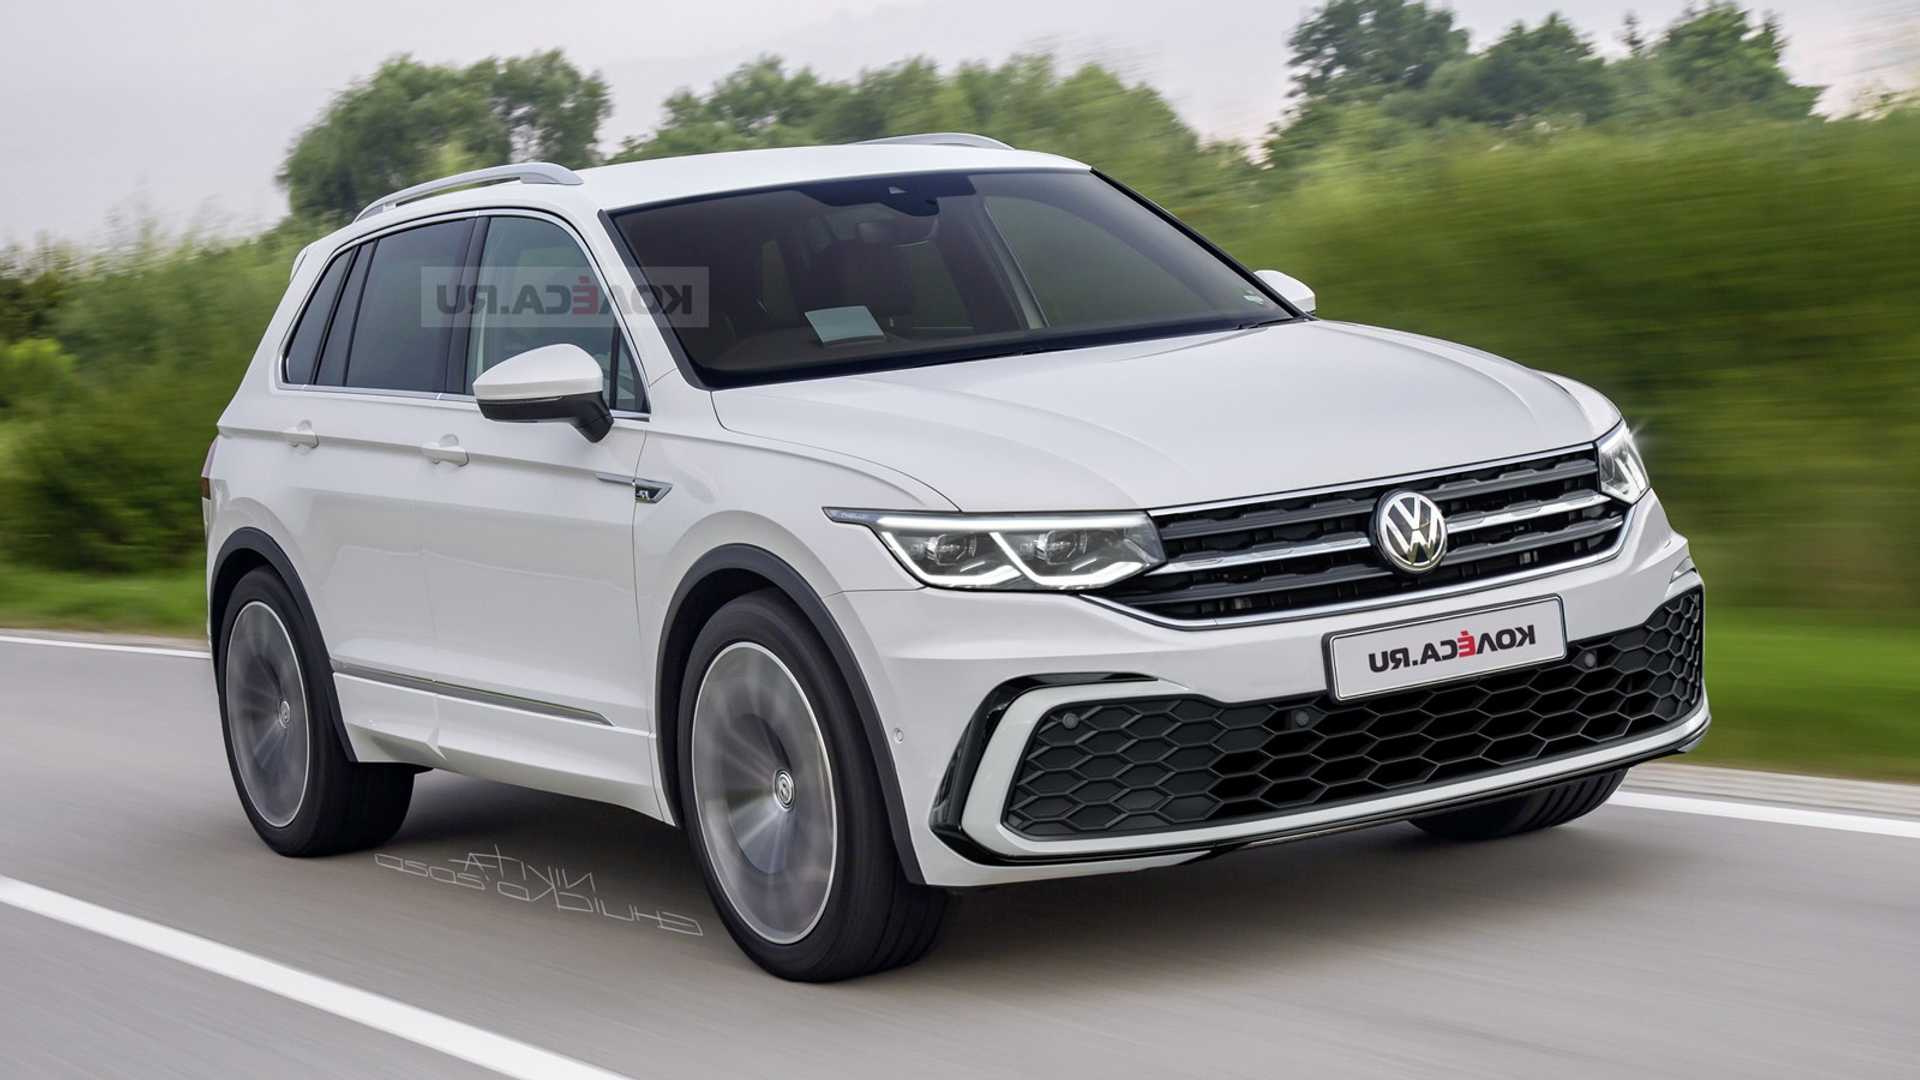 2021 Vw Tiguan Rendering Previews Obvious Changes